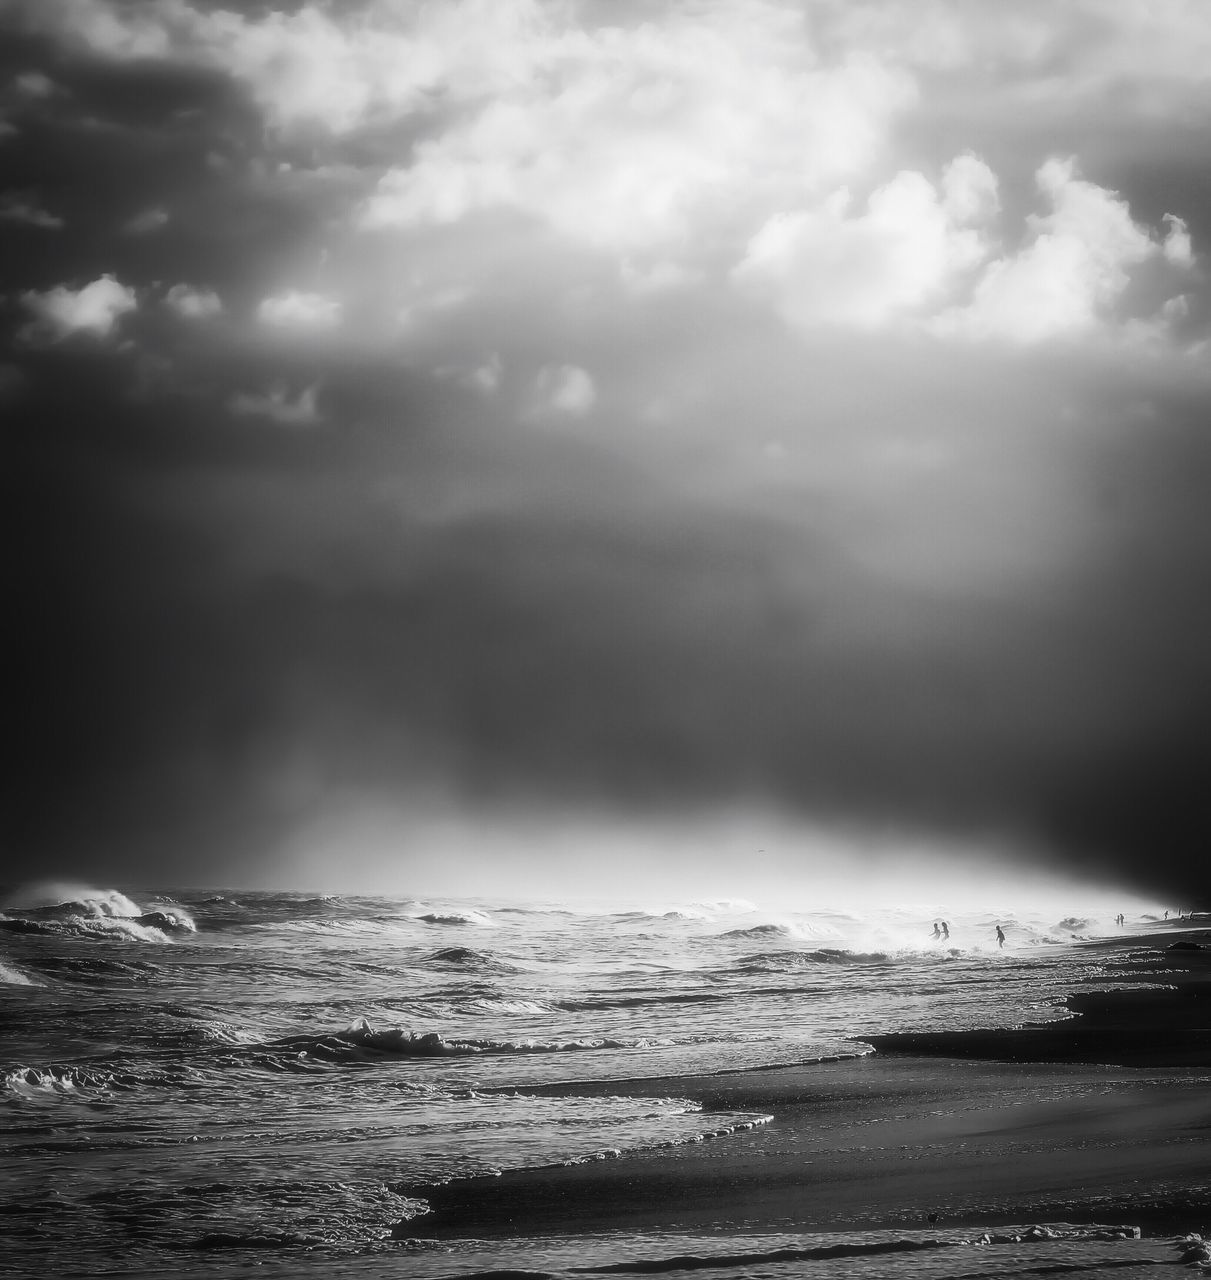 sea, cloud - sky, sky, beauty in nature, water, nature, scenics, tranquility, tranquil scene, outdoors, no people, horizon over water, storm cloud, day, wave